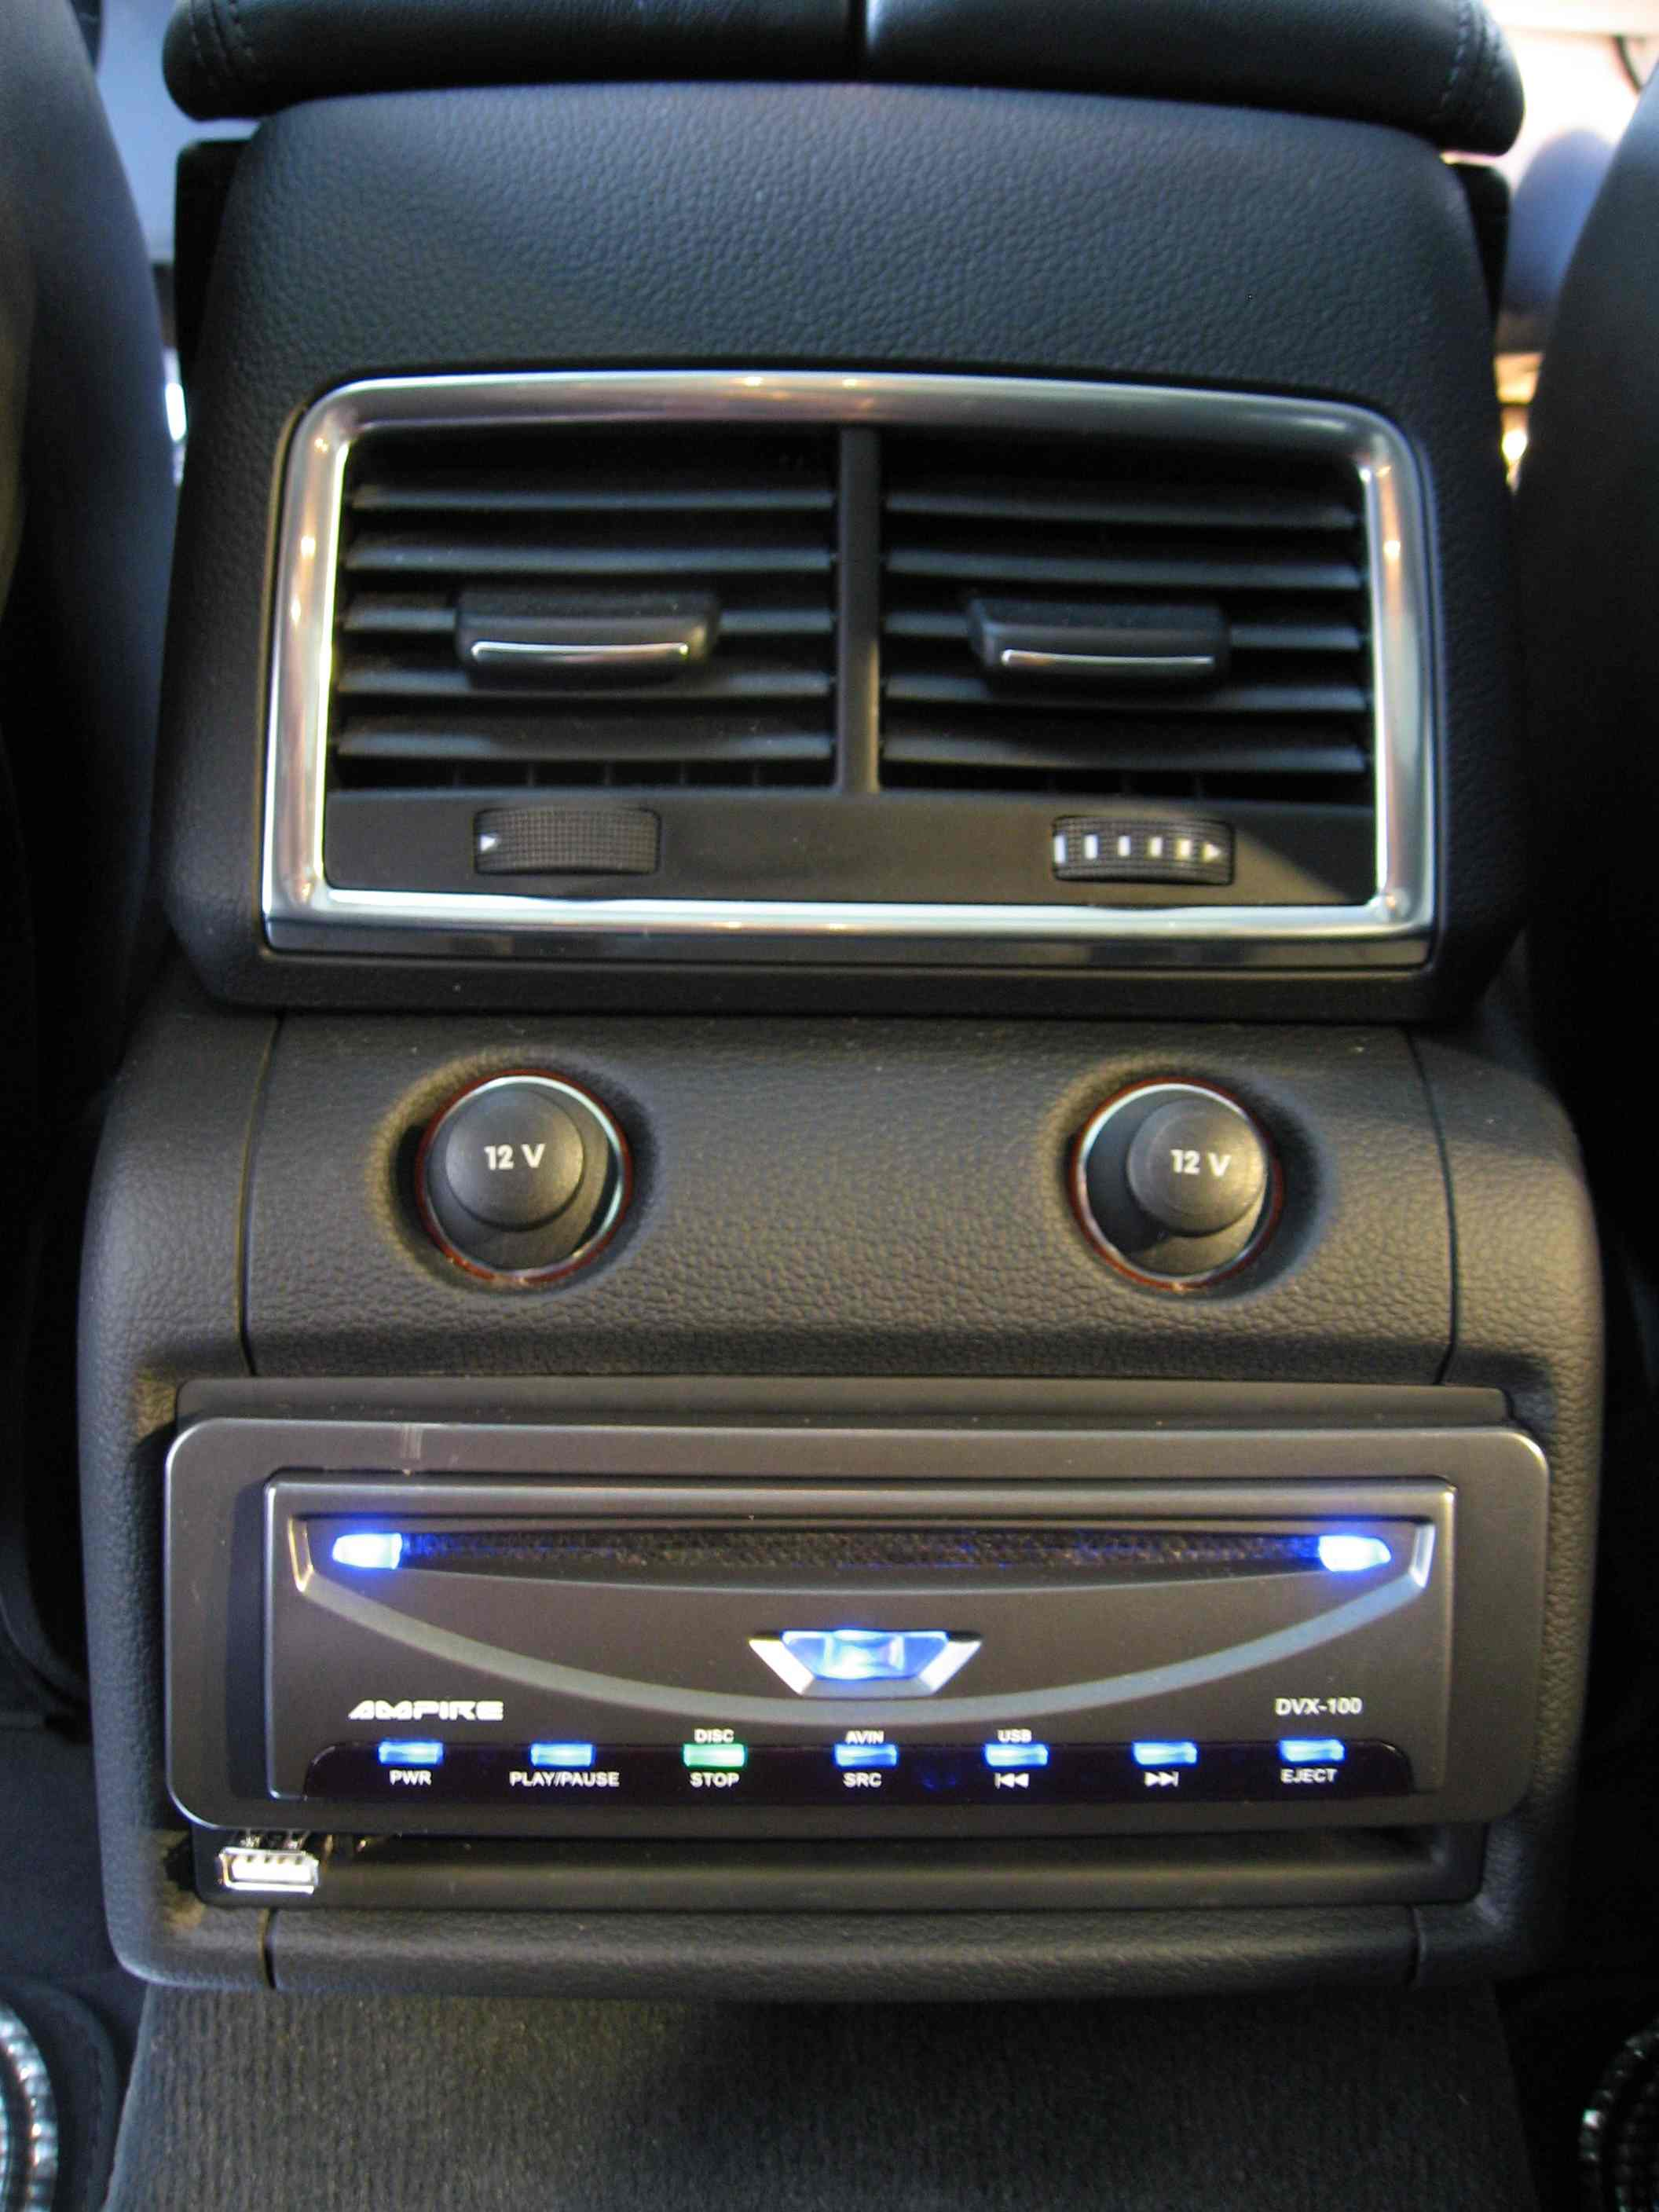 Audi Q7 DVD-Player